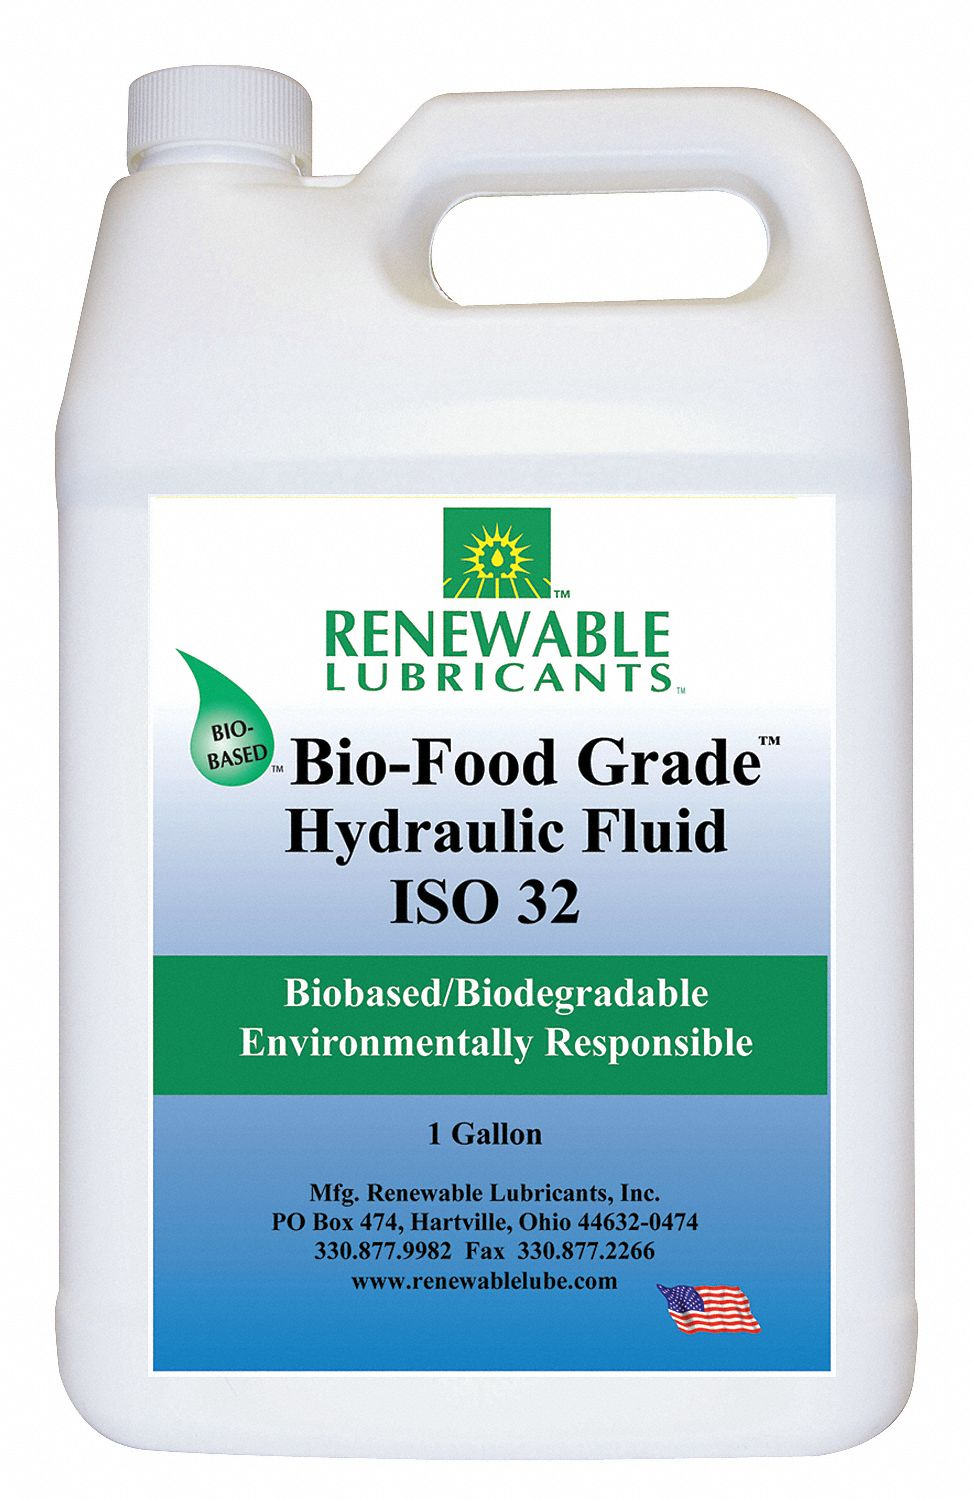 vegetable oil as lubricant essay • bio lubricants, also known as bio-based lubricants or bio-lubes, are made from a variety of vegetable oils, such as rapeseed, canola, sunflower, soybean, palm, and coconut oils.